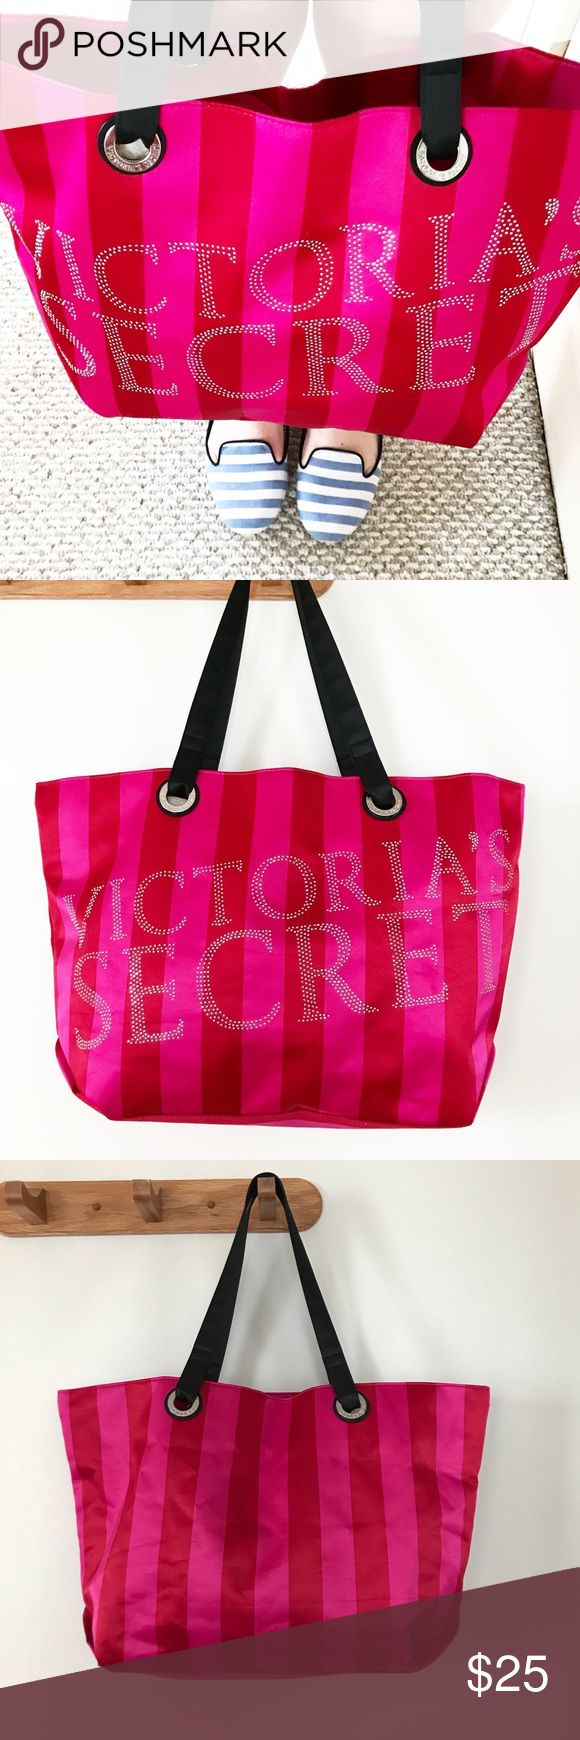 "VS Red Pink Stripe Bling Weekender Bag Tote Victoria's Secret 2011 limited edition Black Friday Supermodel Tote. Red and pink striped weekender bag / tote satin bag. Rhinestone embellished Stud bling sparkly logo on front.  • Approx measurements: L 19"" x H 13"" x D 5.5"" Strap Drop: 9.5"" • Excellent condition — some missing rhinestones in the V and the ET Victoria's Secret Bags Totes"